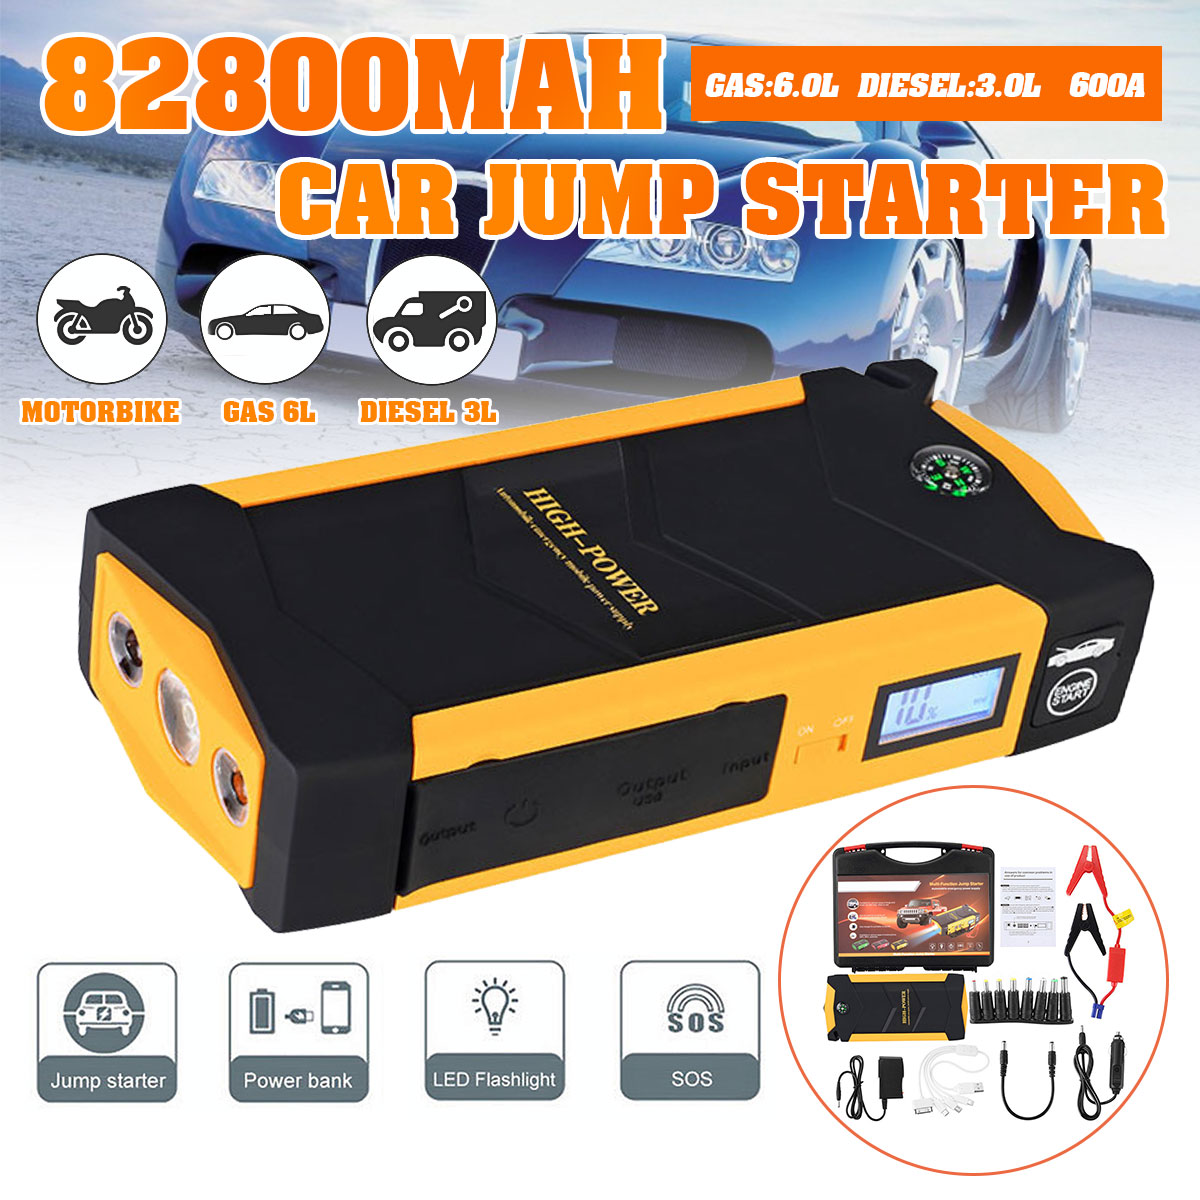 82800mAh Car Jump Starter Power Bank 600A Portable Car Battery Booster Charger 12V Starting Device Petrol Diesel Car Starter